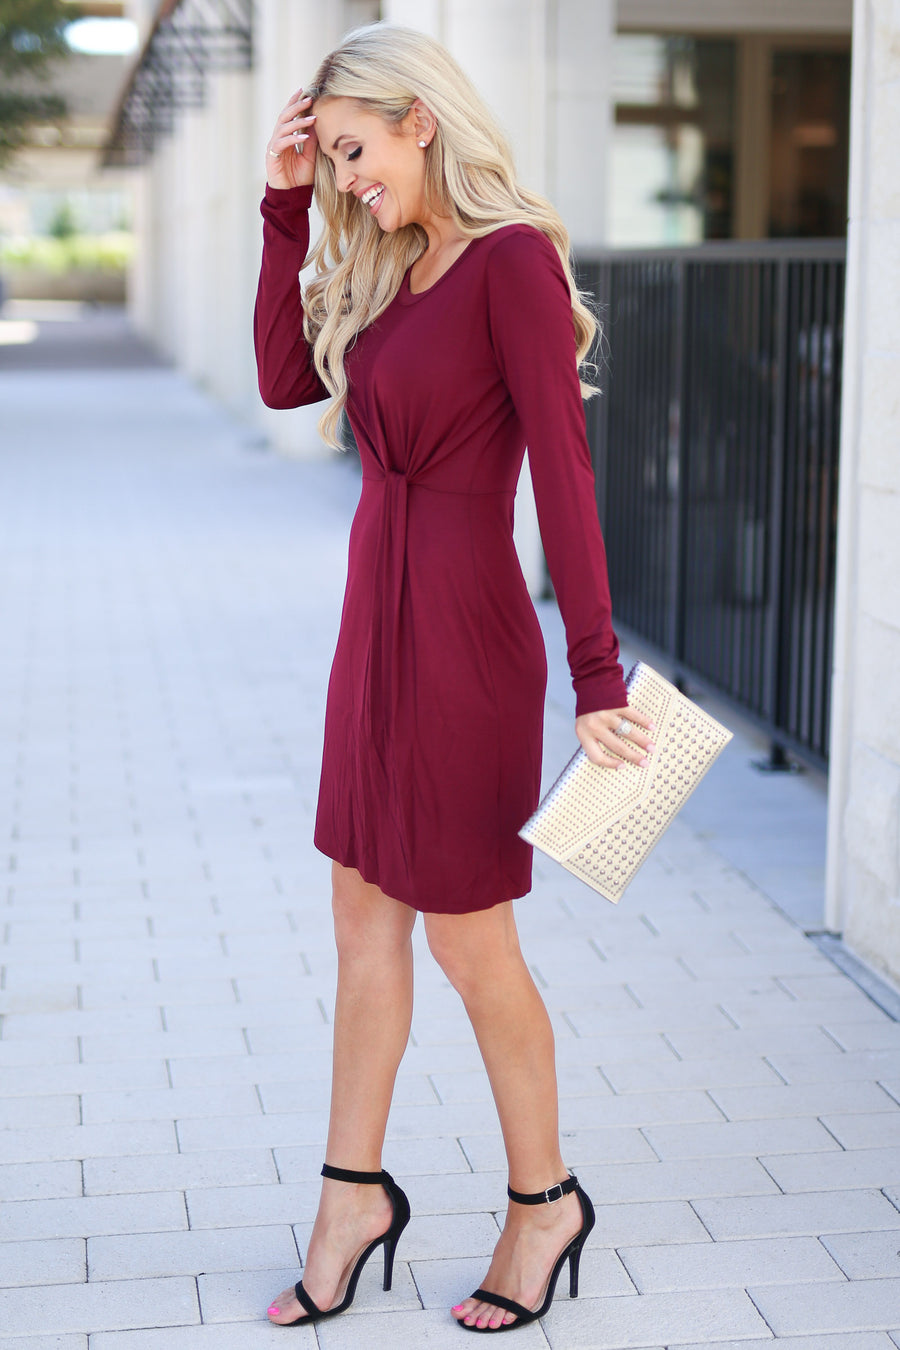 Making Me Famous Dress - Wine women's long sleeve dress with side knot at waist, closet candy boutique 1